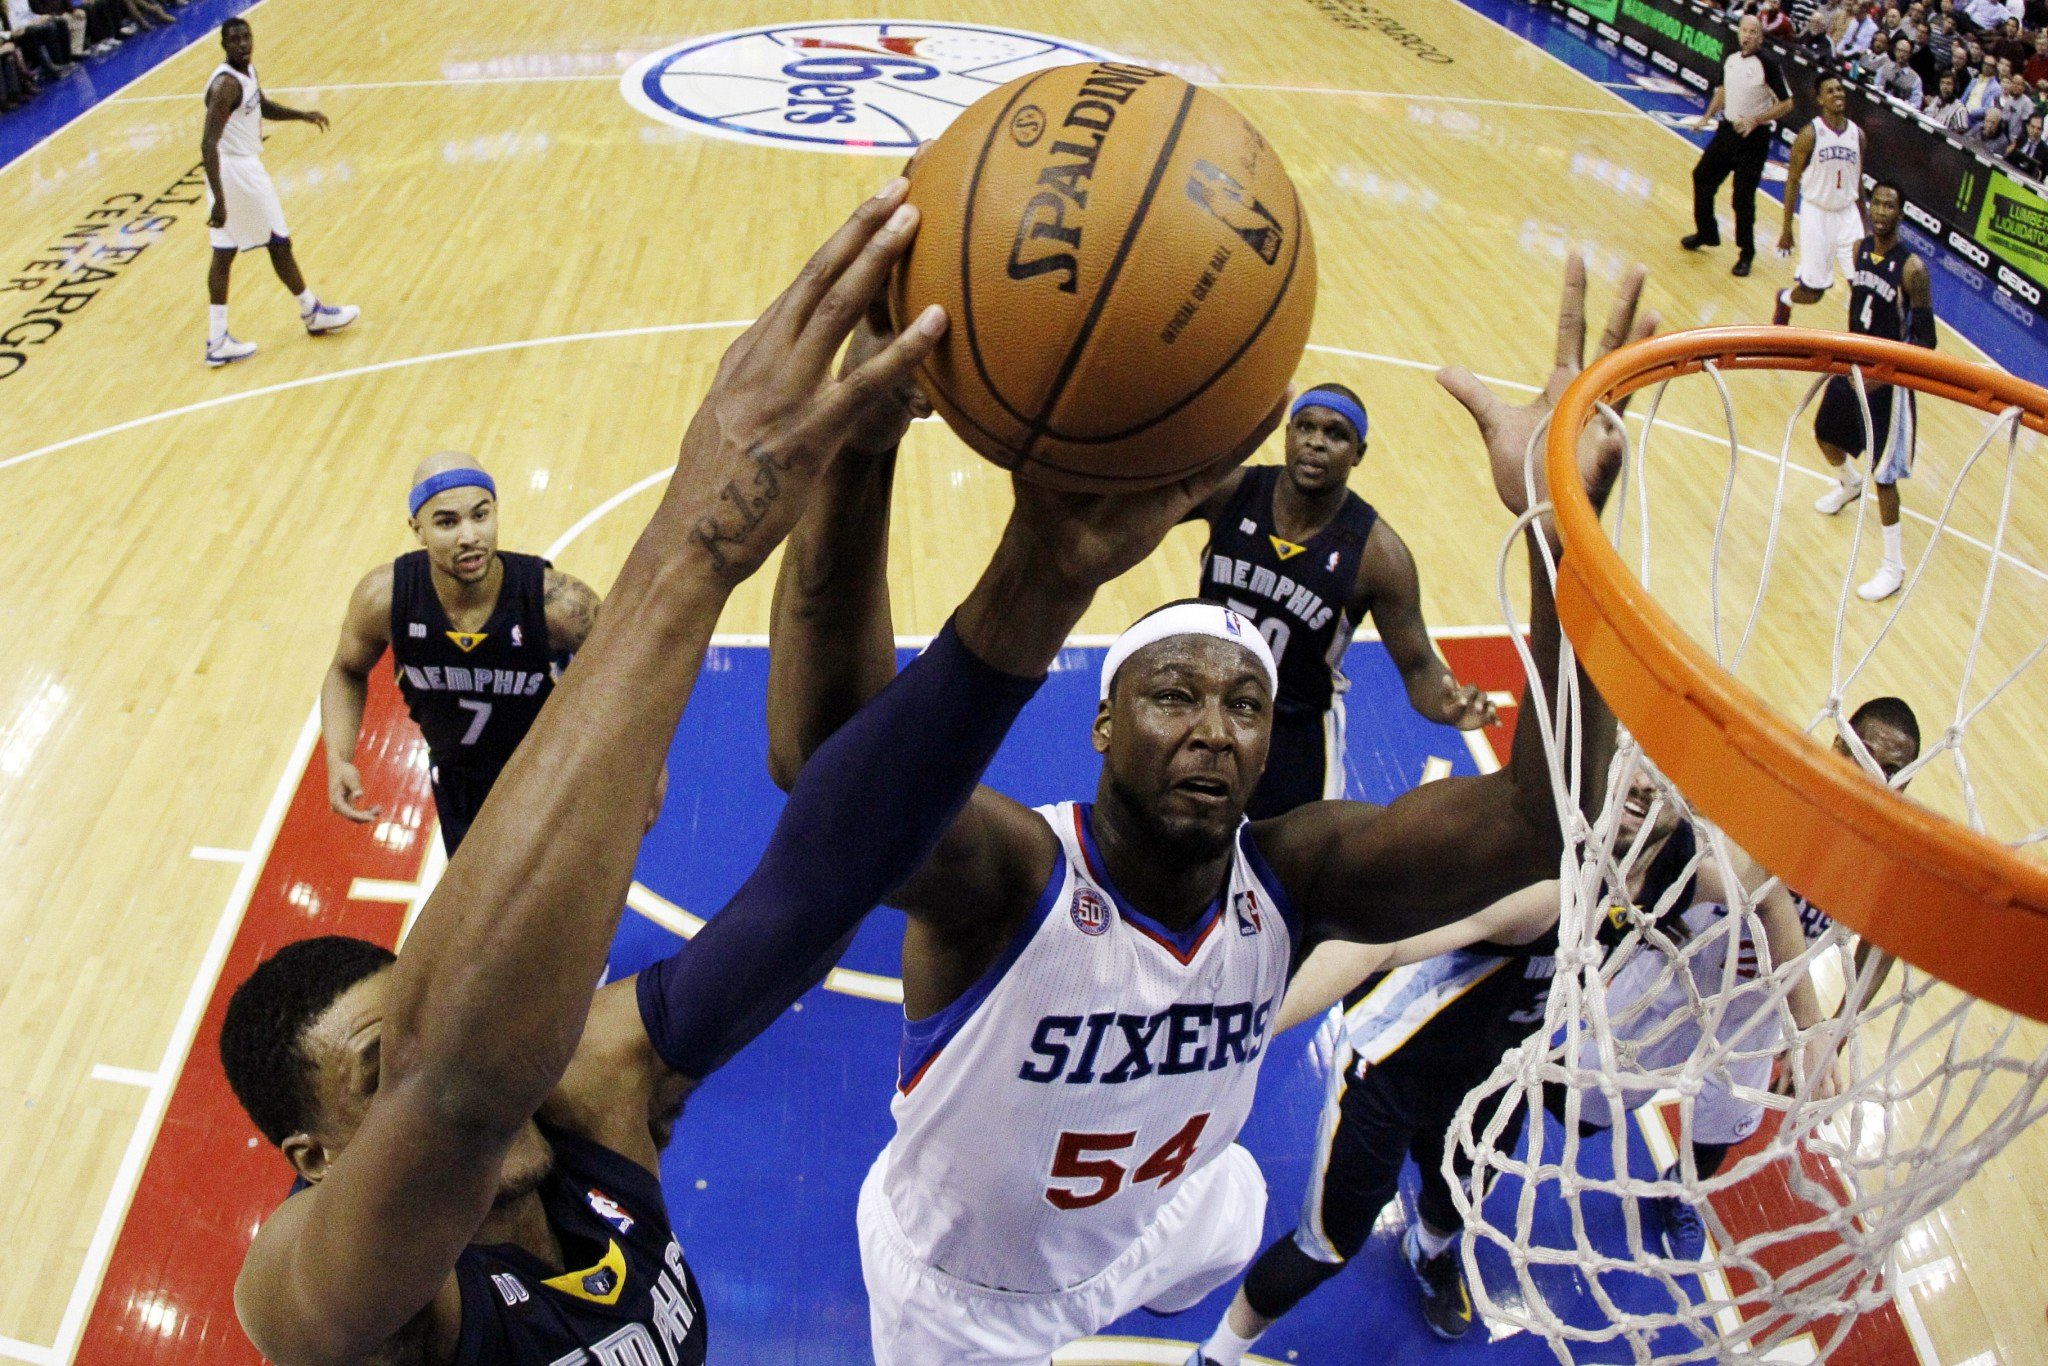 More than three years after his last NBA appearance, Kwame Brown (center) appears intent on making a comeback. (AP/Matt Slocum)